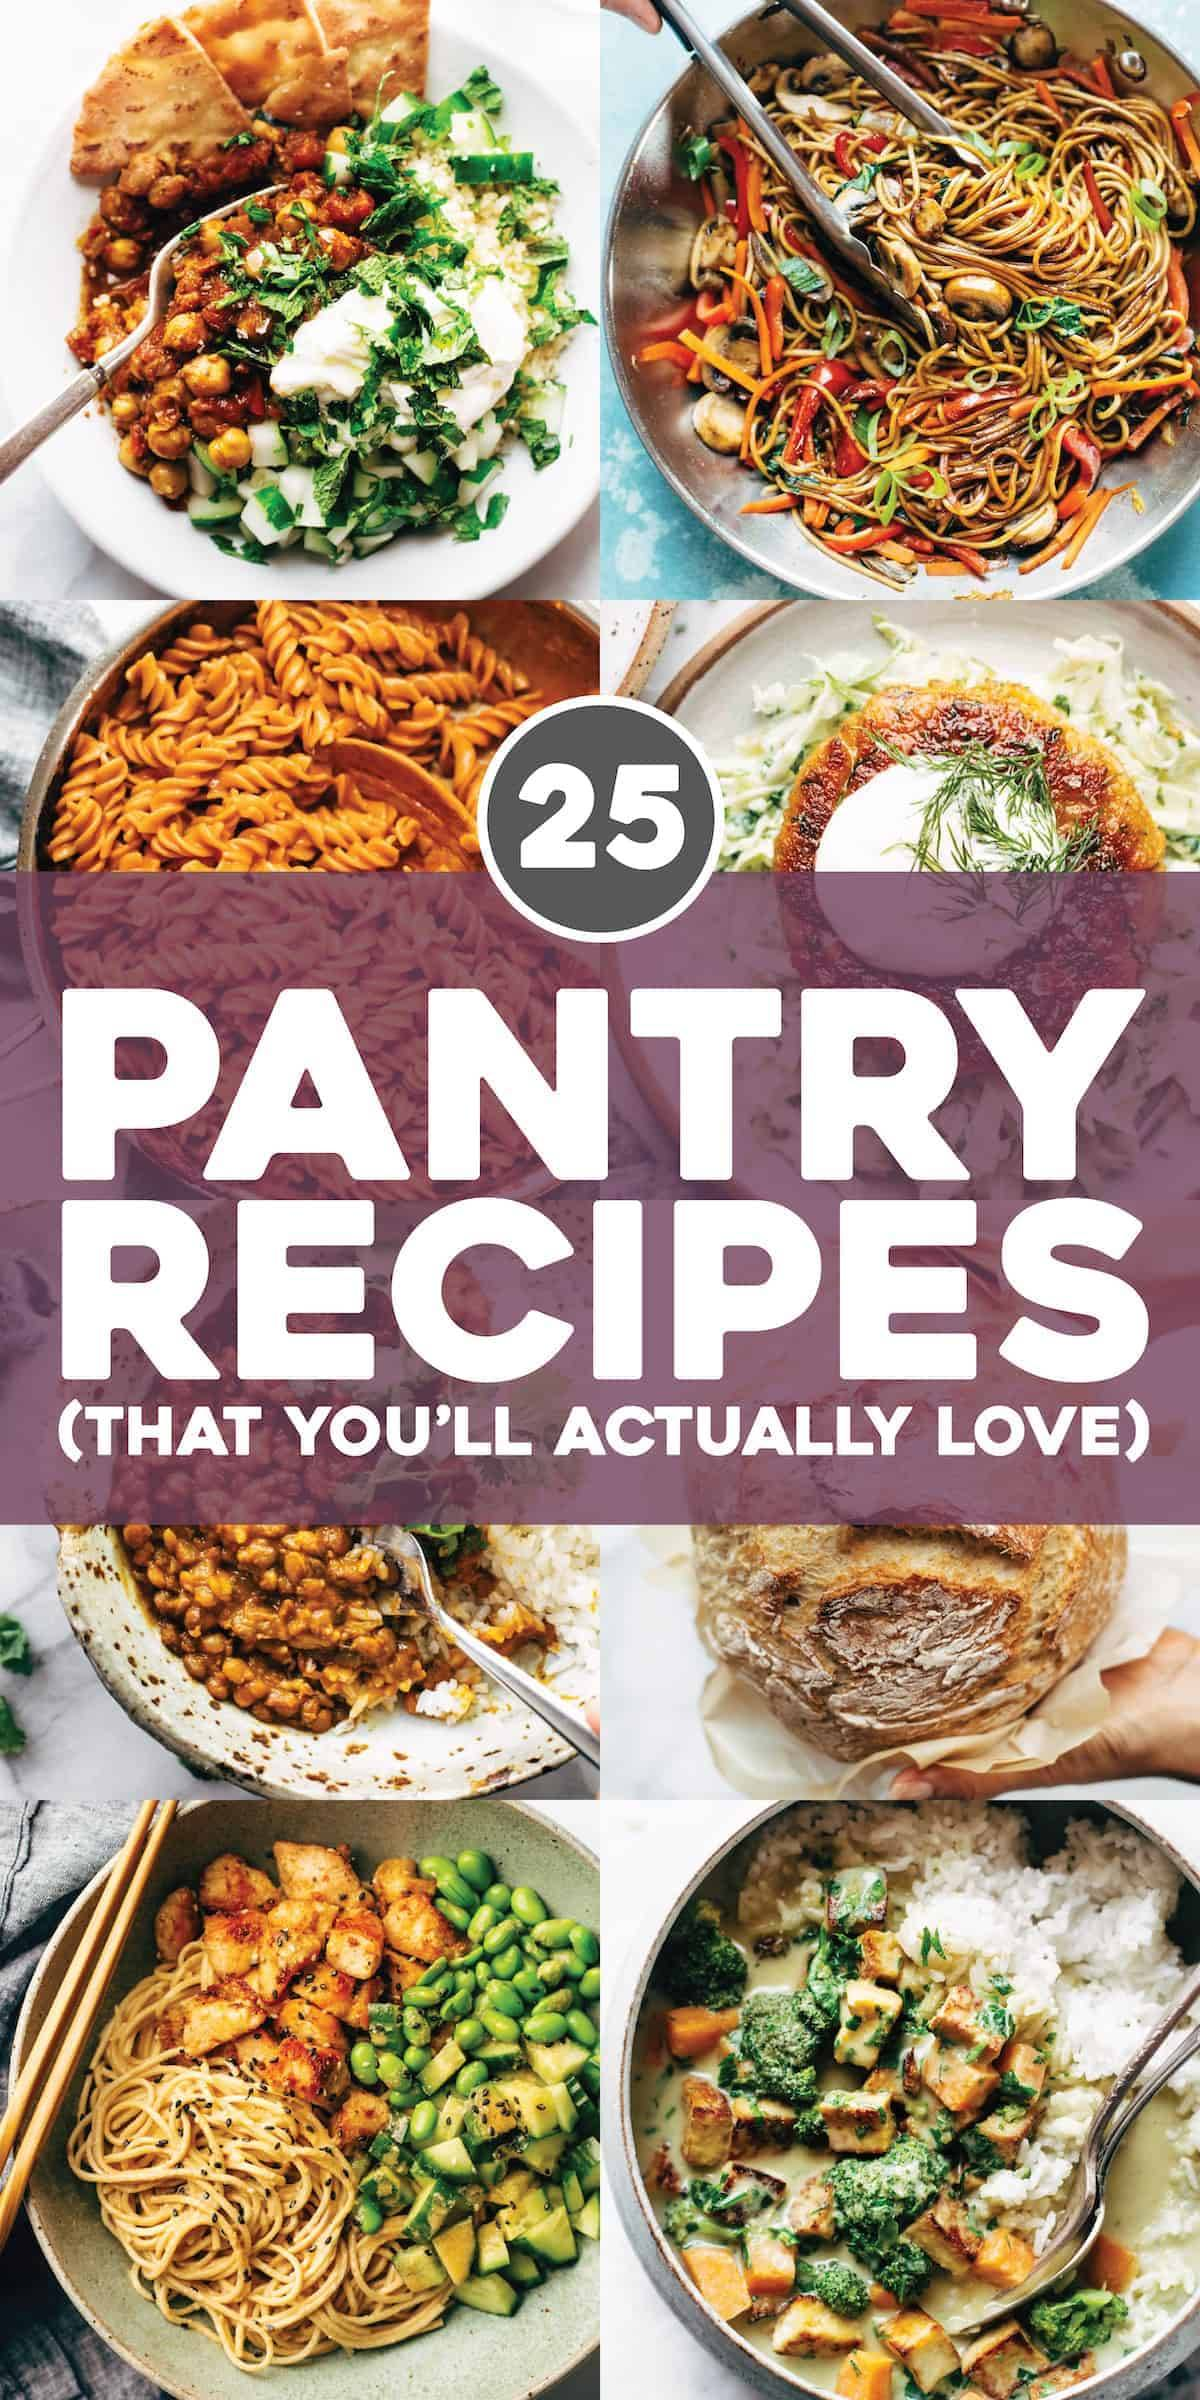 25 Pantry Recipes (That You'll Actually Love)